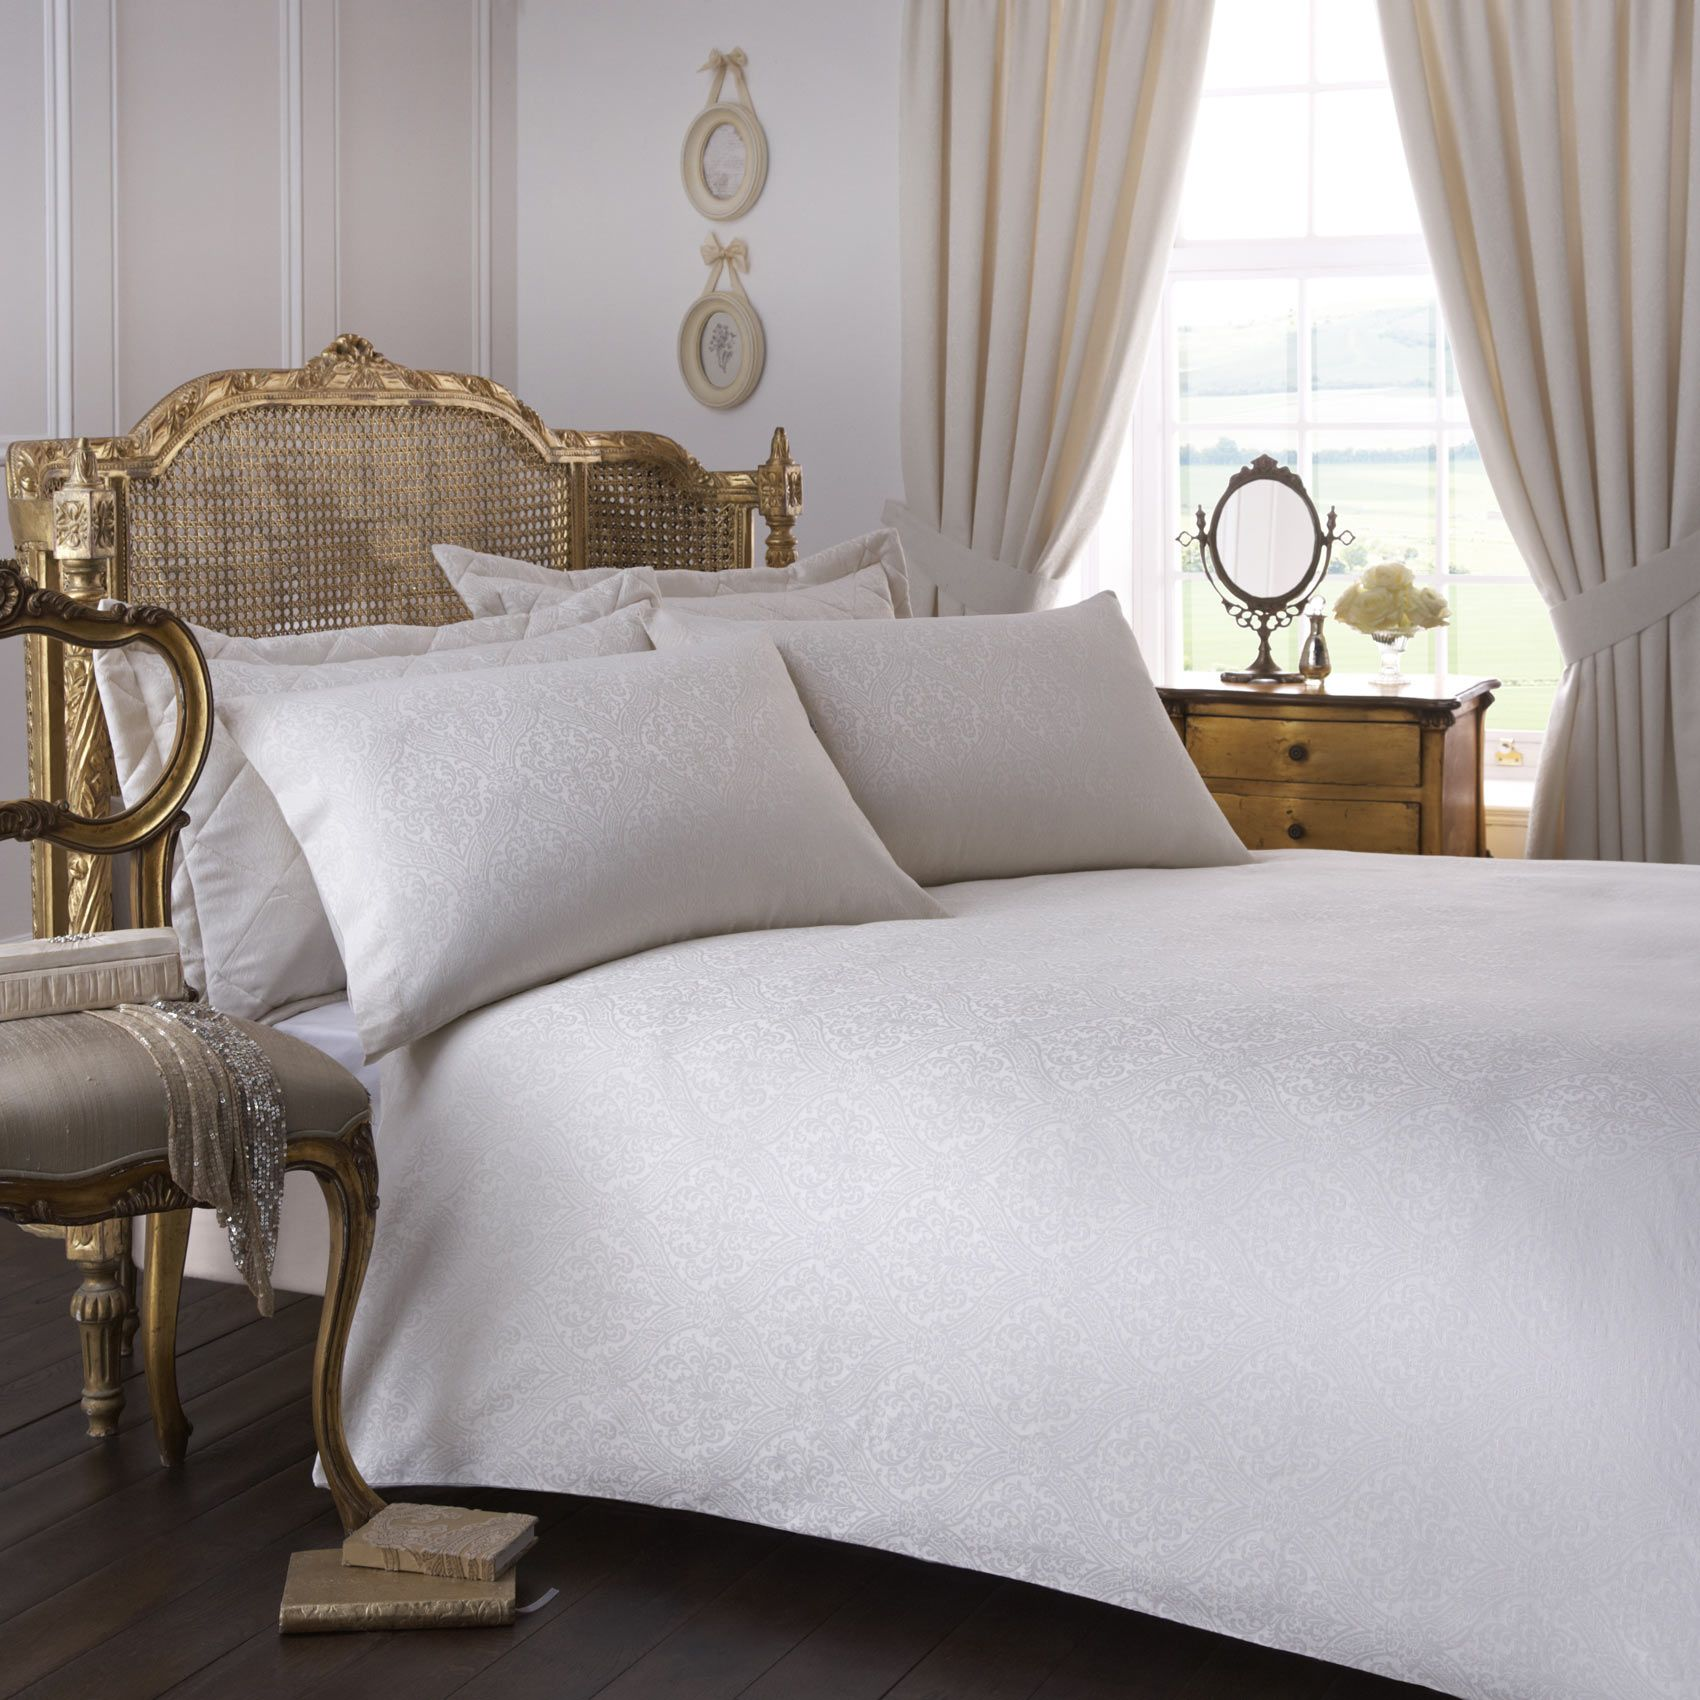 french duvet covers french inspired vantona renaissance damask duvet cover sets cream french style room setting with beautiful jacquard bedding in ivory cream and gold bed